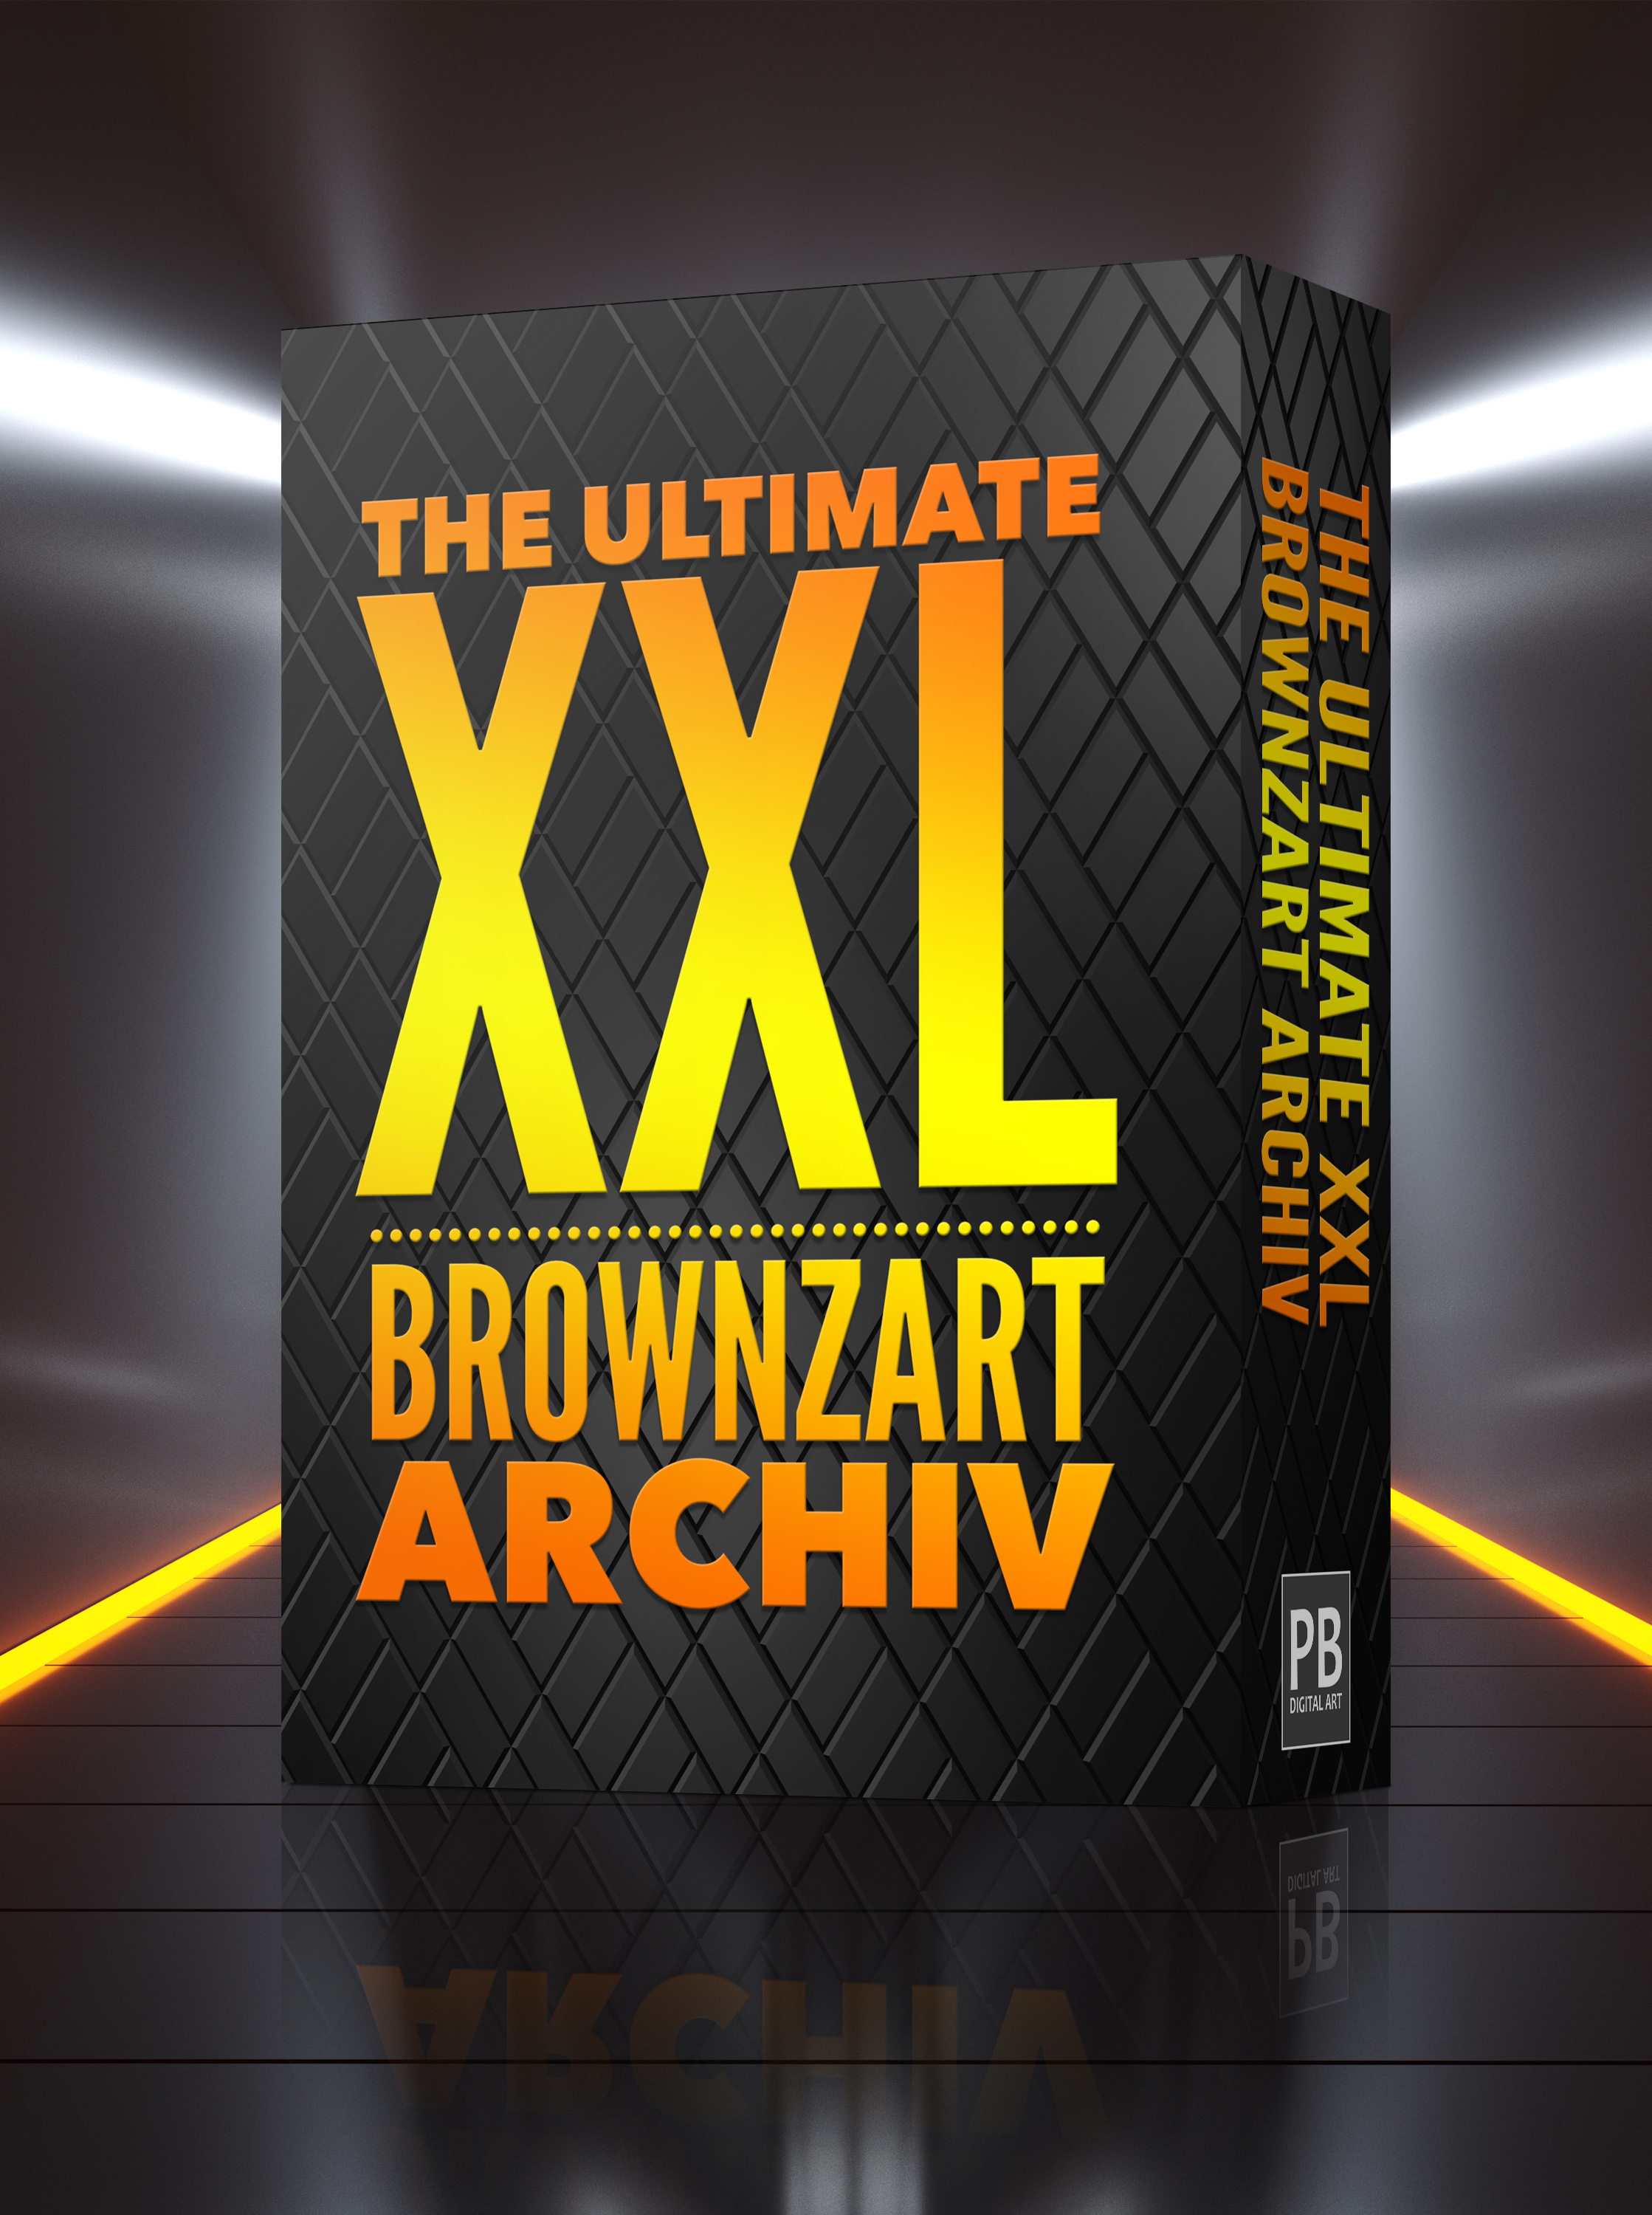 000_BROWNZarchivBOX